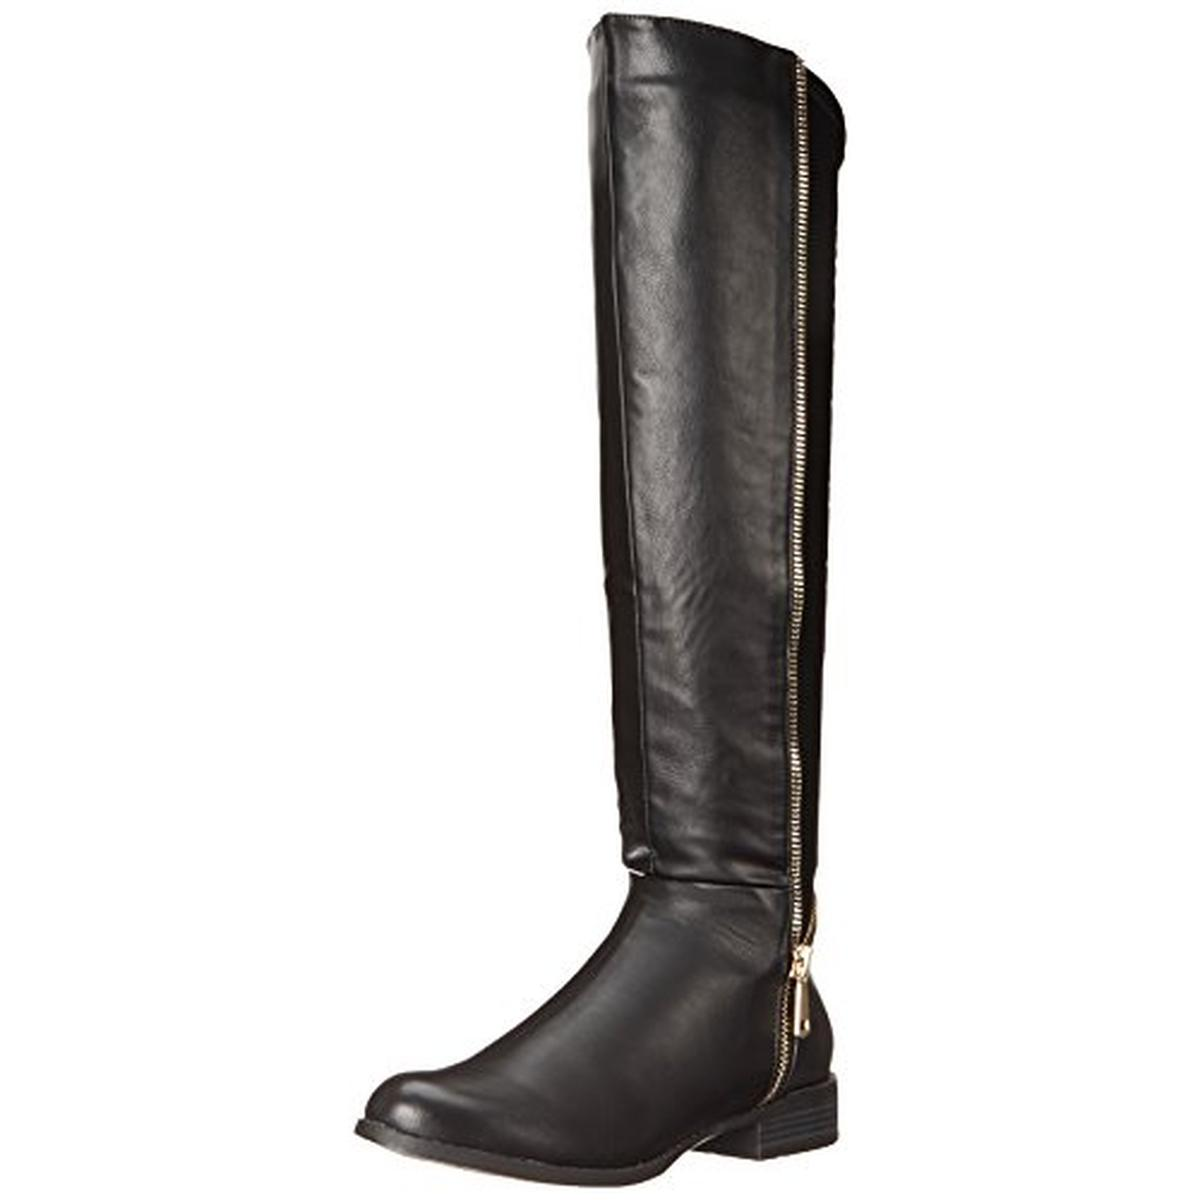 Luichiny Womens Phone Booth Faux Leather Knee High Riding Boots by Luichiny